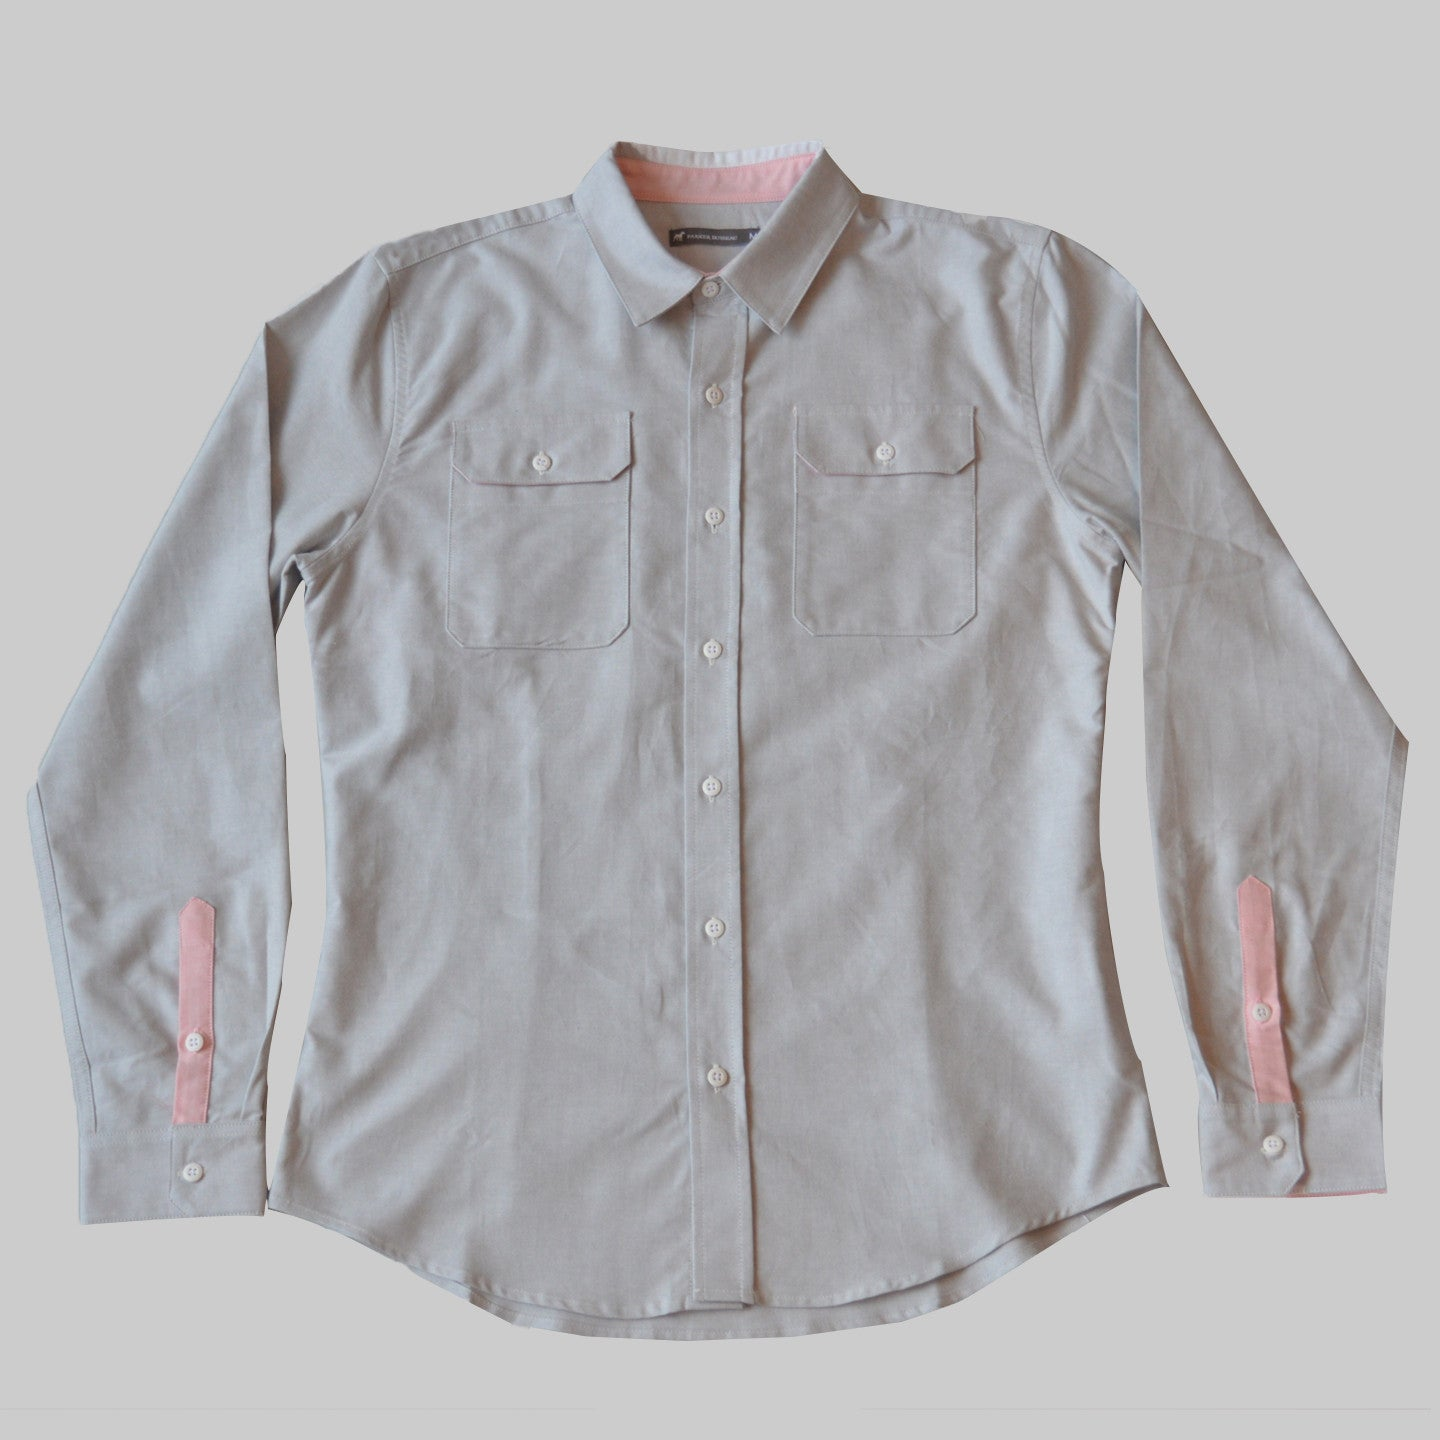 Limited Edition Giro d'Italia Oxford Work Shirt - Smoke Grey Work Shirt, Limited Edition- Parker Dusseau : Functional Menswear Essentials for the Always Ready Lifestyle. Based in San Francisco, California